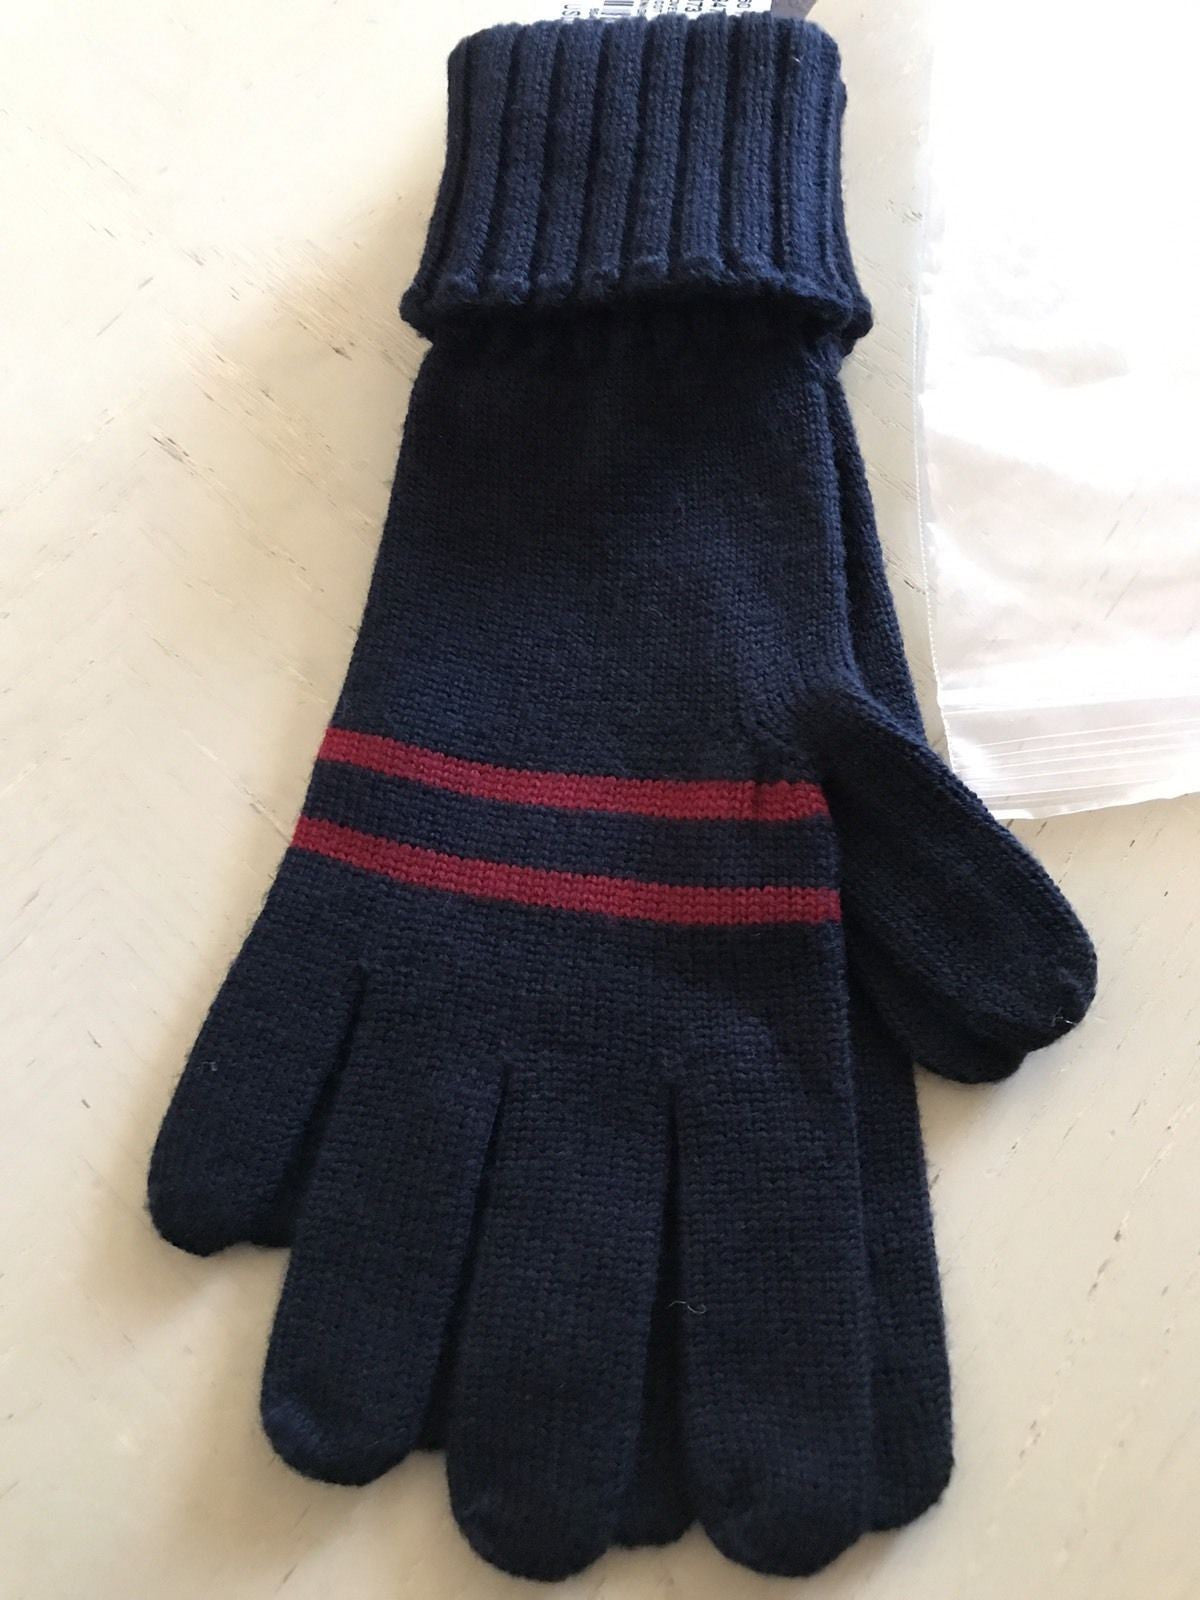 NWT $215 Gucci Women's Wool Gloves Blue M Italy - BAYSUPERSTORE